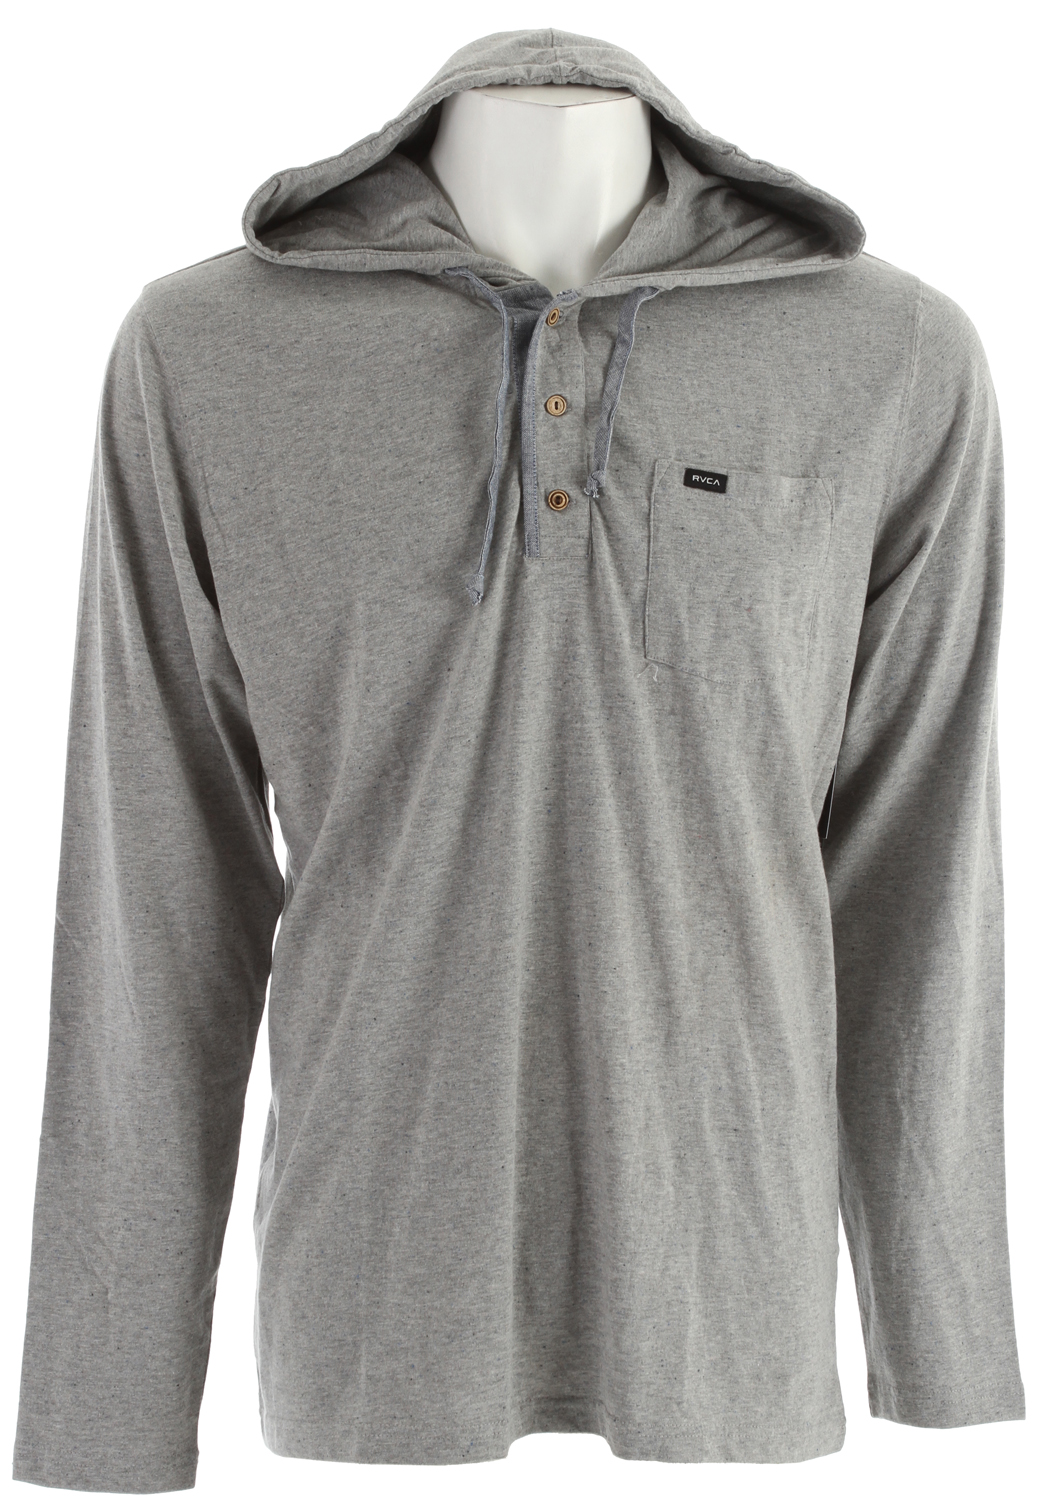 Key Features of the RVCA Liability Hood Henley Shirt: Regular fit 88% cotton/9% viscose/3% polyester yarn dyed speckled jersey Long sleeve pullover hood with drawcord Three wooden button Henley placket with chambray trim detail Self fabric elbow patches and patch pocket at left chest with RVCA solo label - $27.95